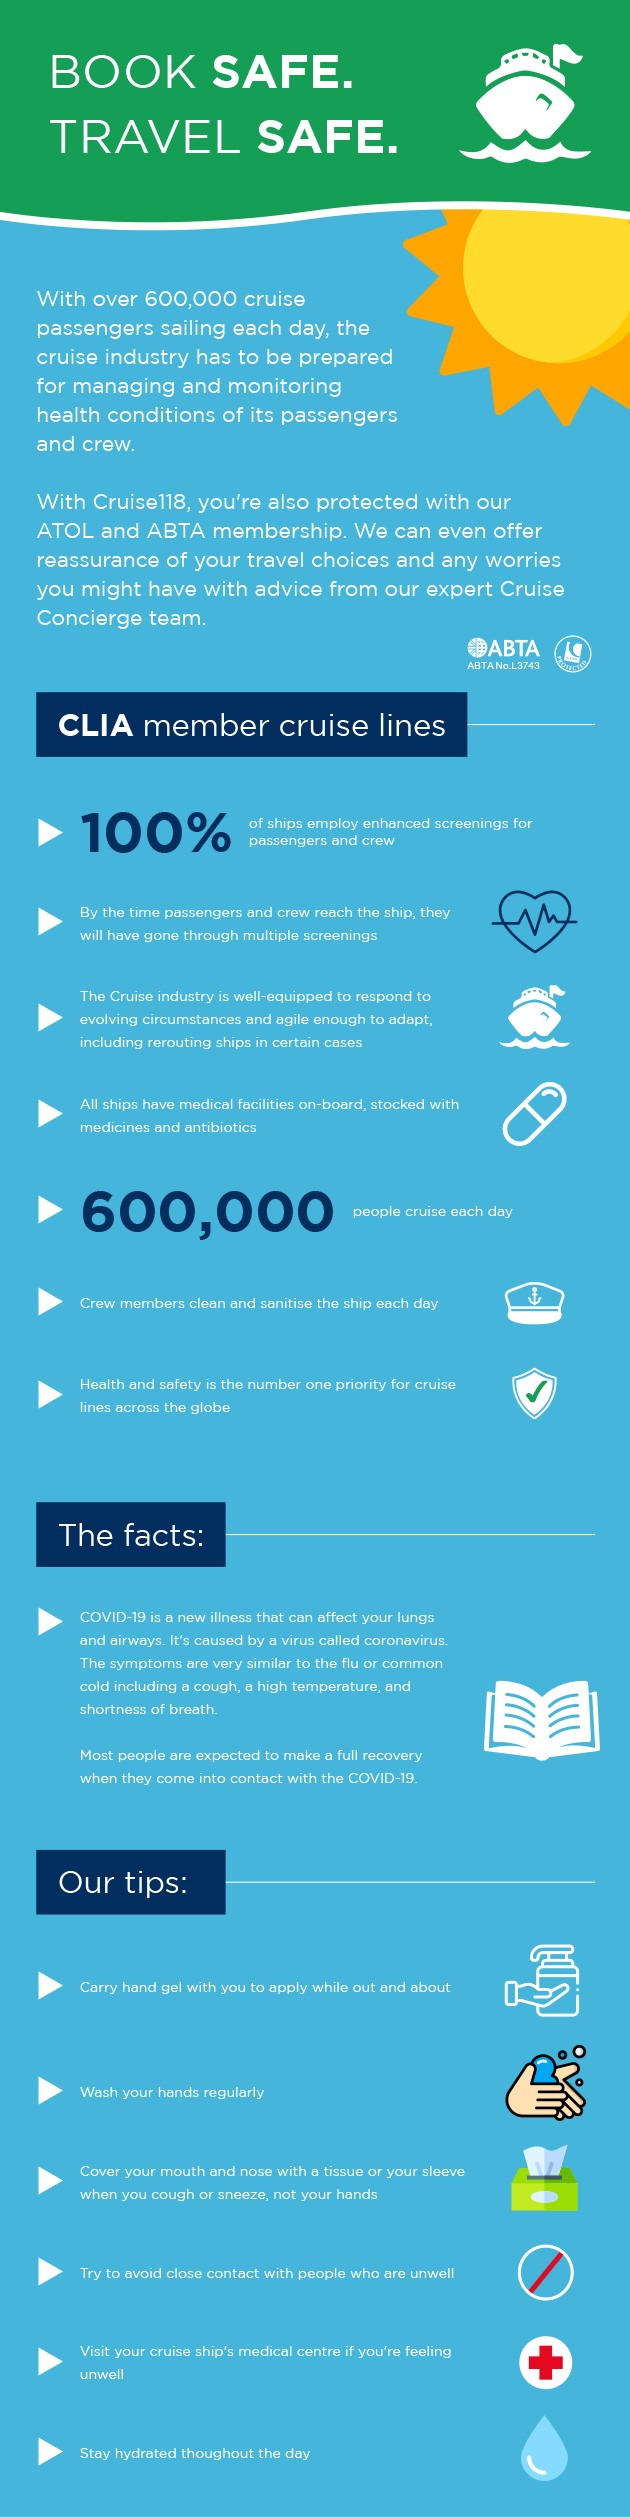 cruise safety infographic